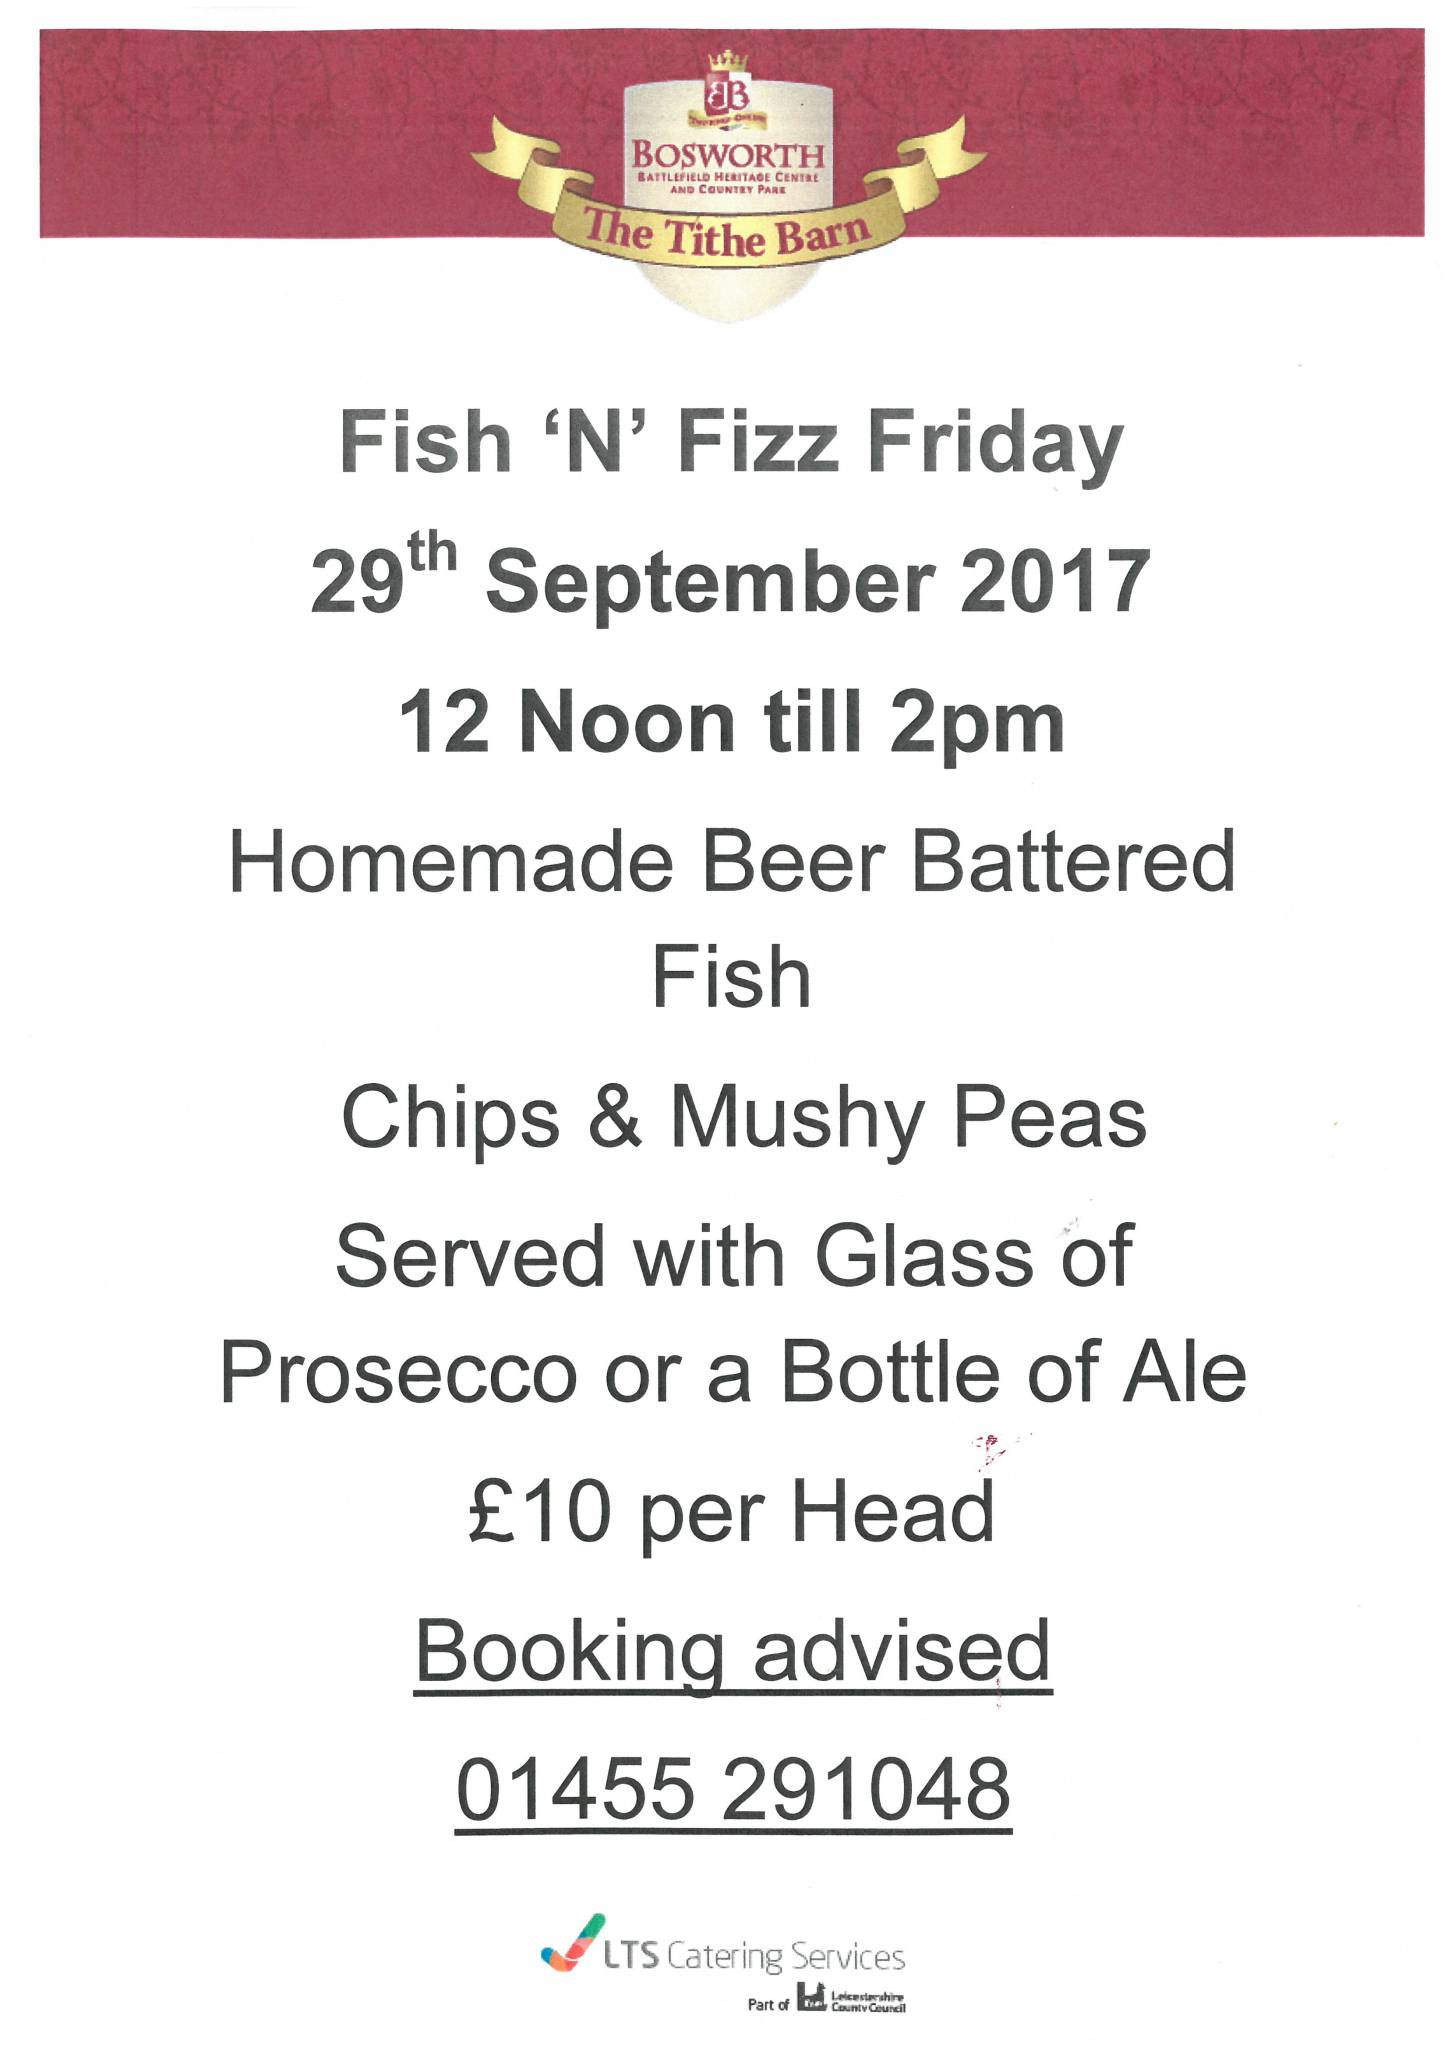 Fish 'N' Fizz Friday